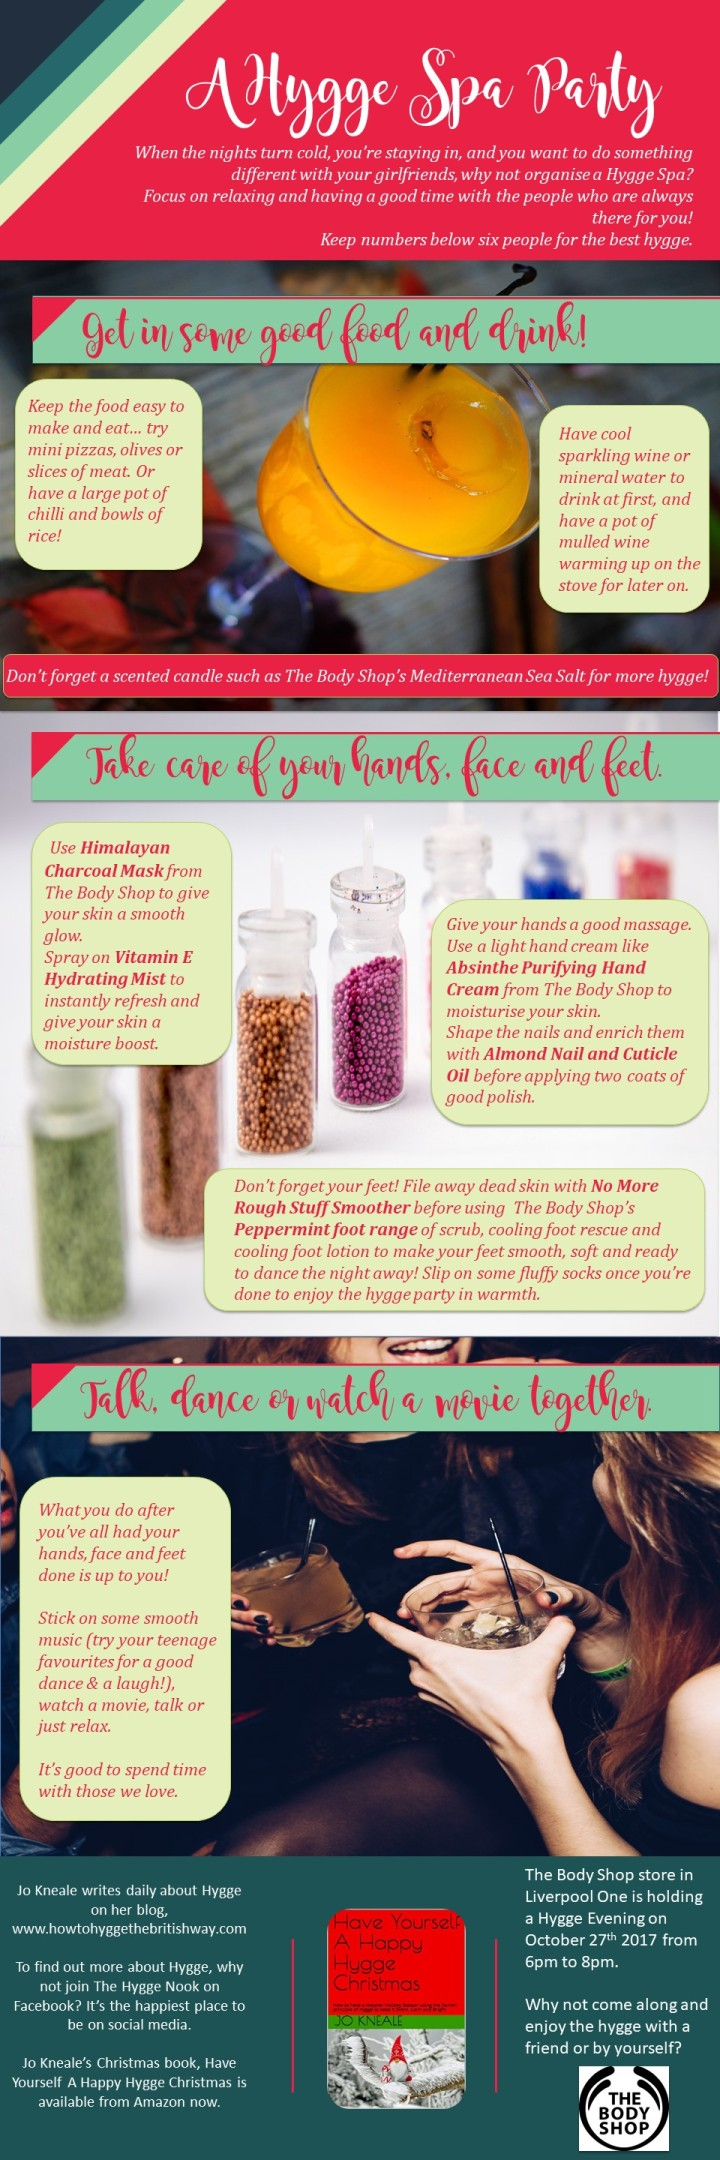 Hygge Spa Party Infographic